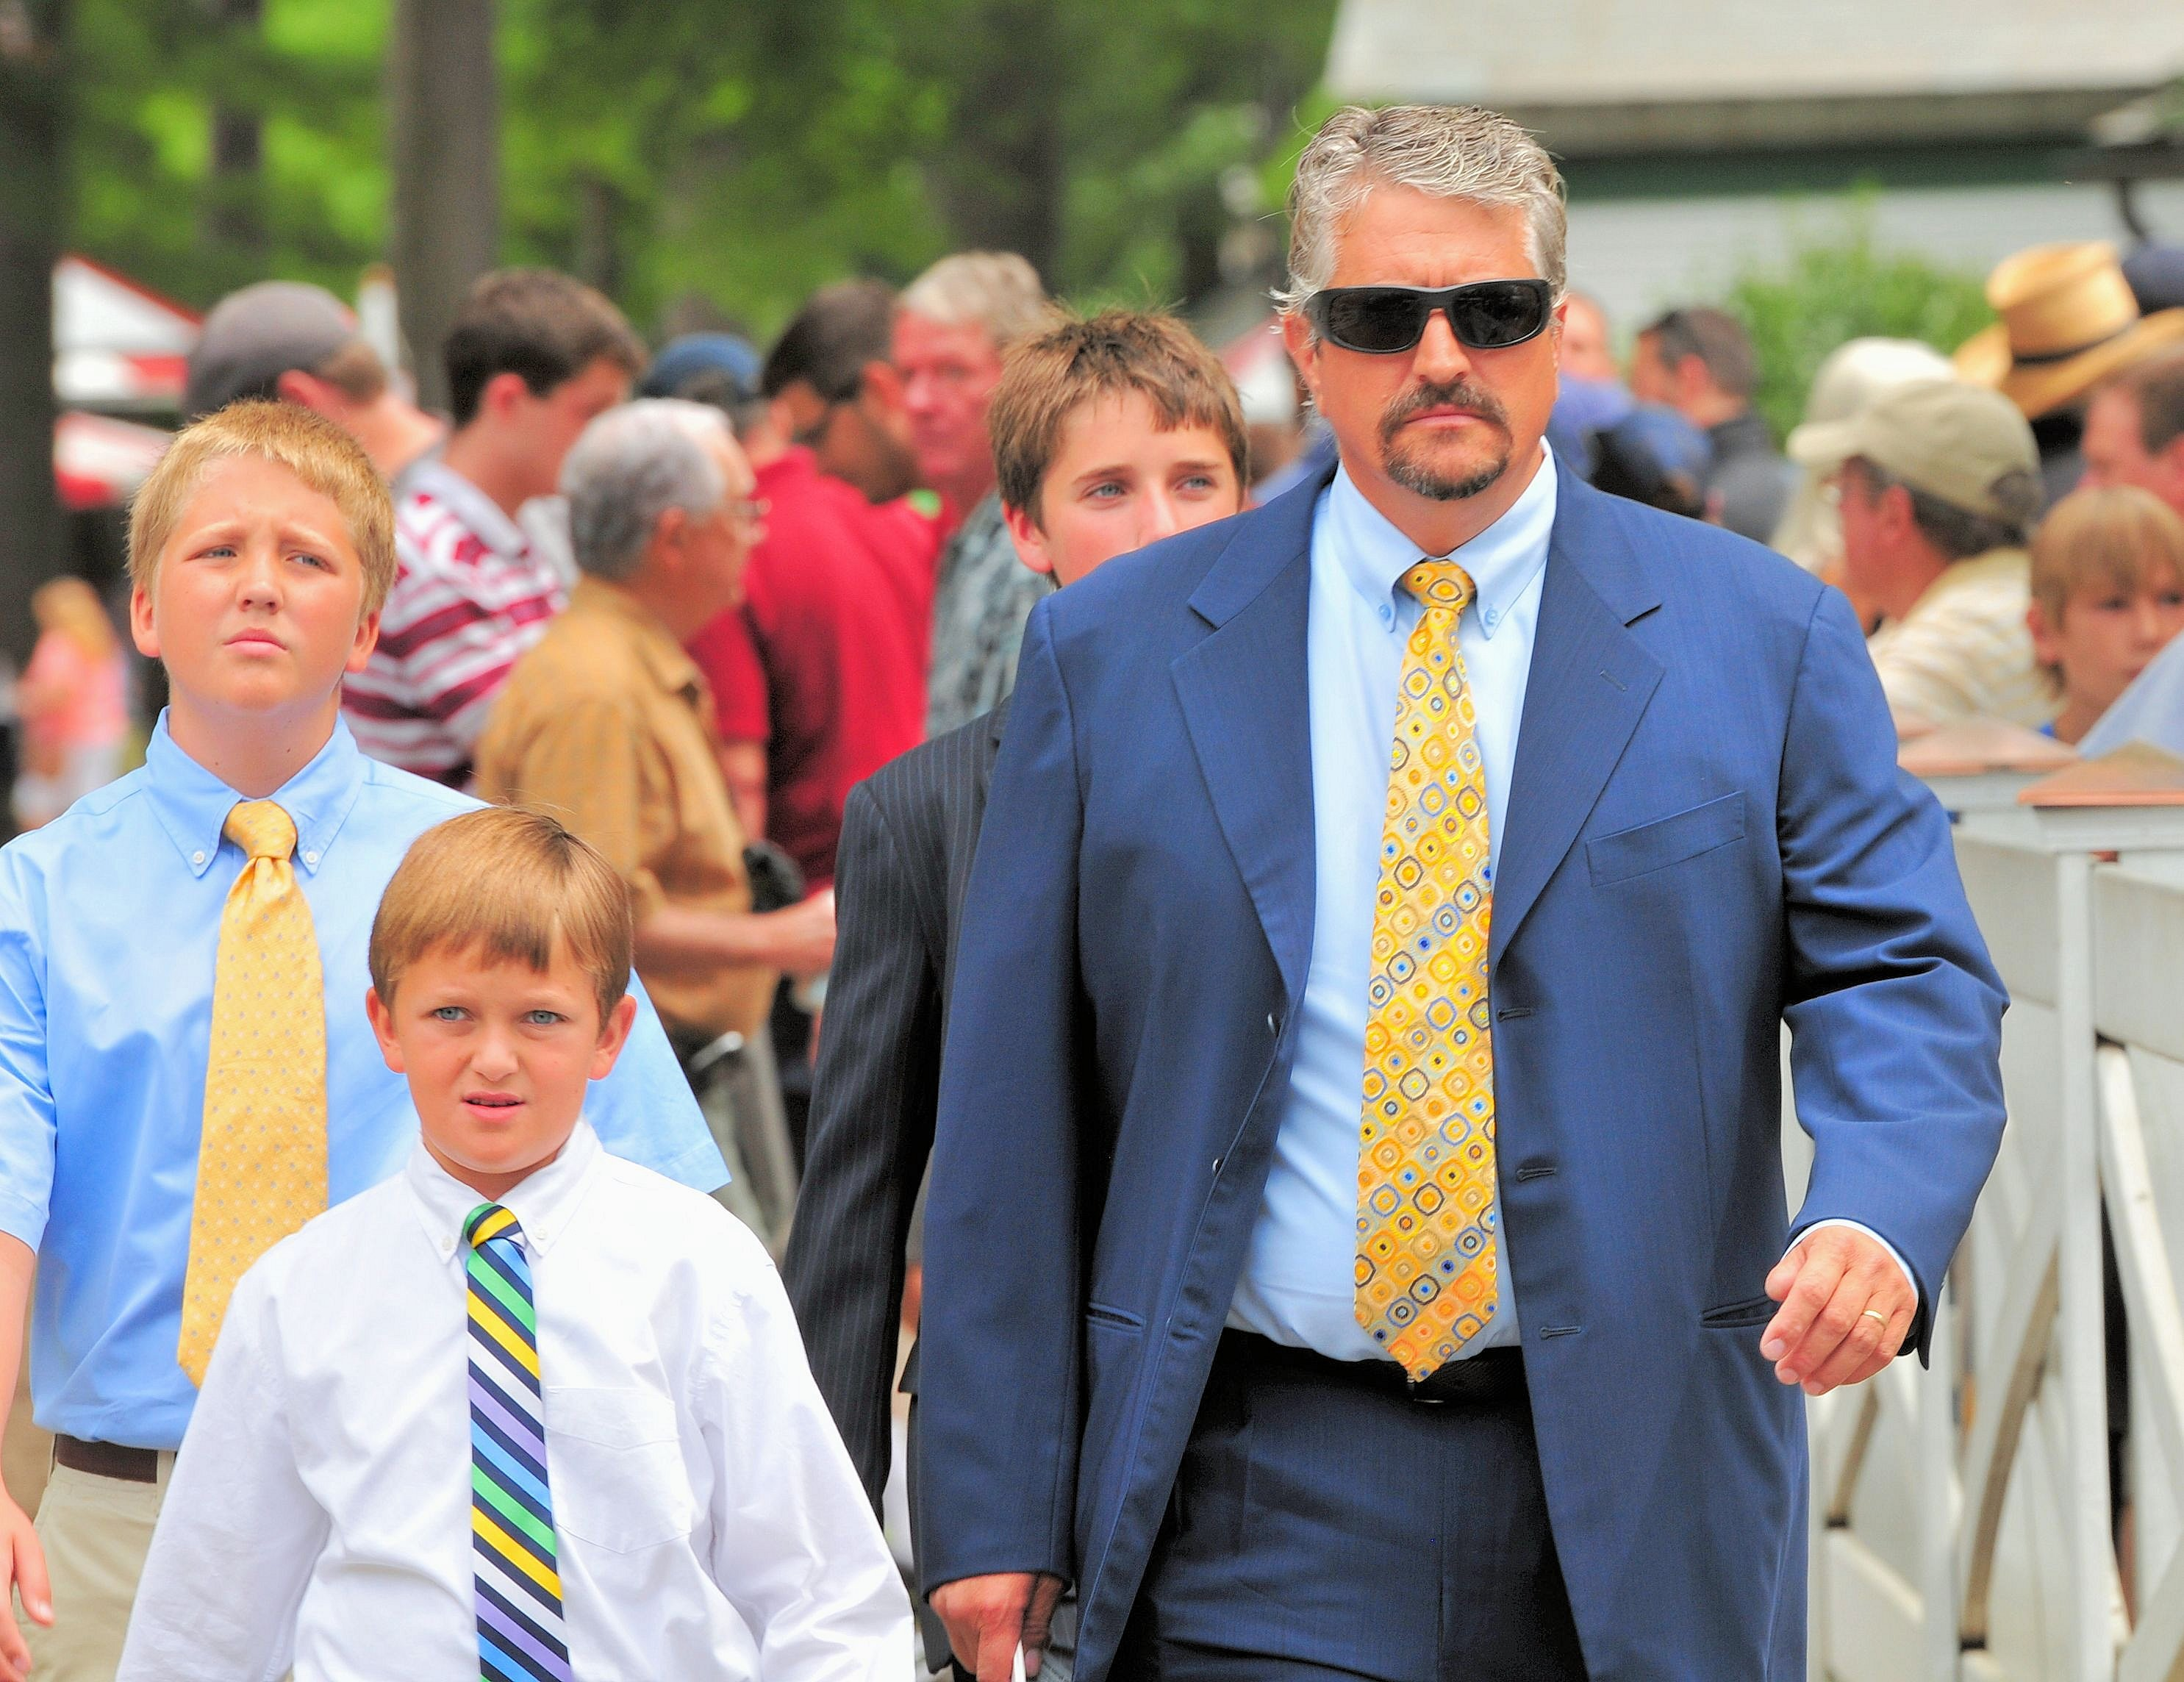 Steve Asmussen at Saratoga (Brien Bouyea)